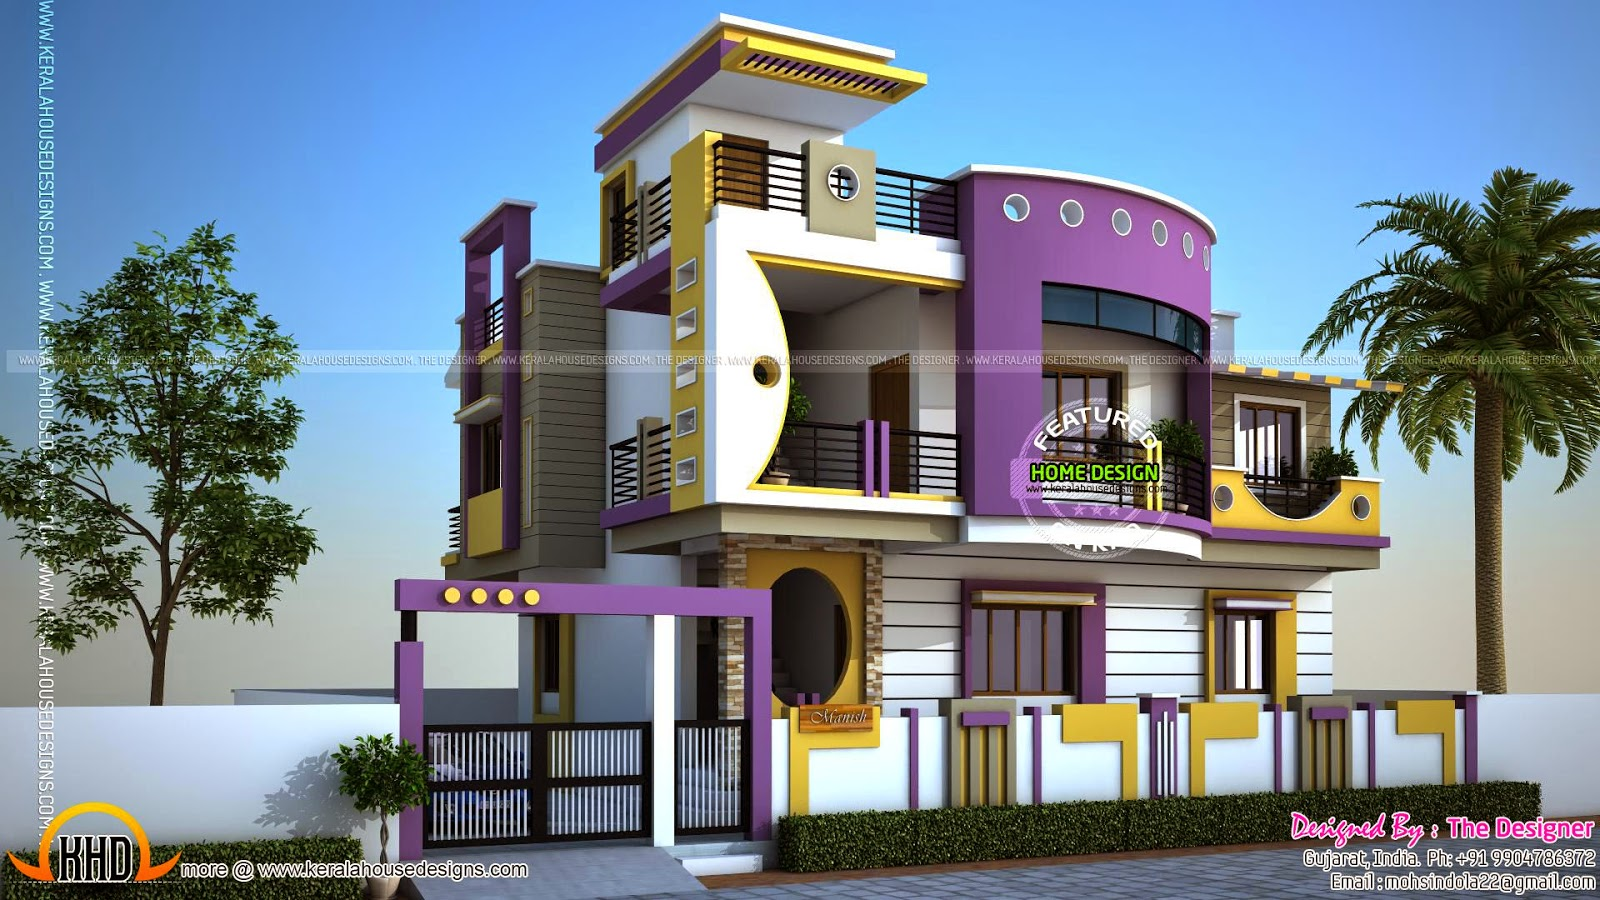 House exterior designs in contemporary style kerala home for House front model design